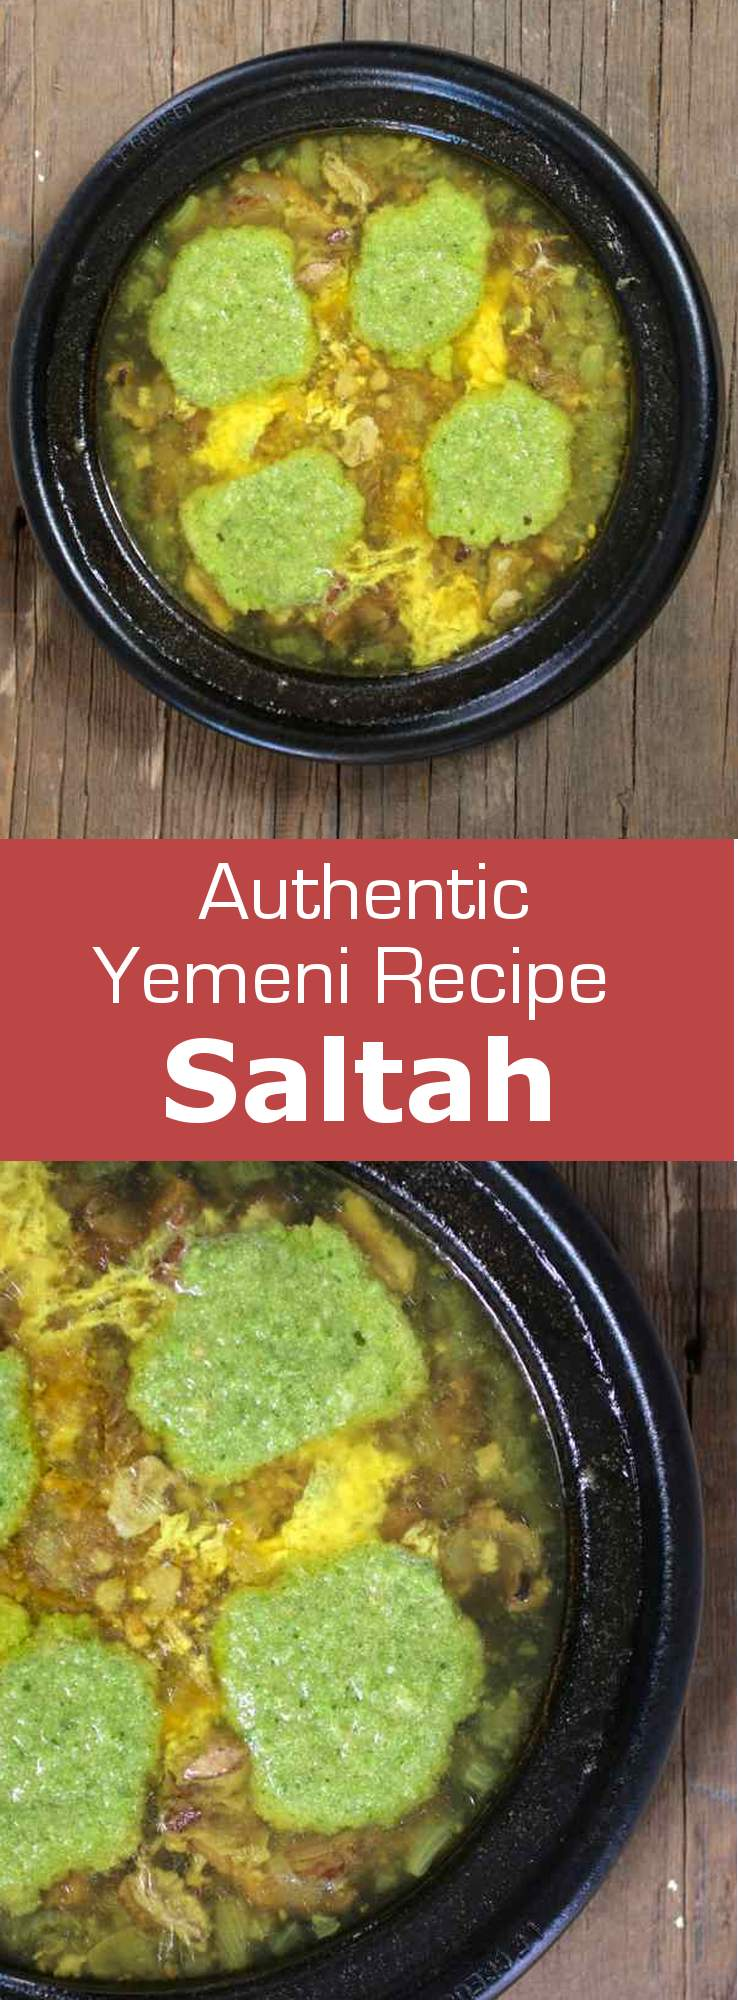 Saltah traditional yemeni recipe 196 flavors saltah is a traditional yemeni soup that consists of broth with meat andor vegetables forumfinder Gallery